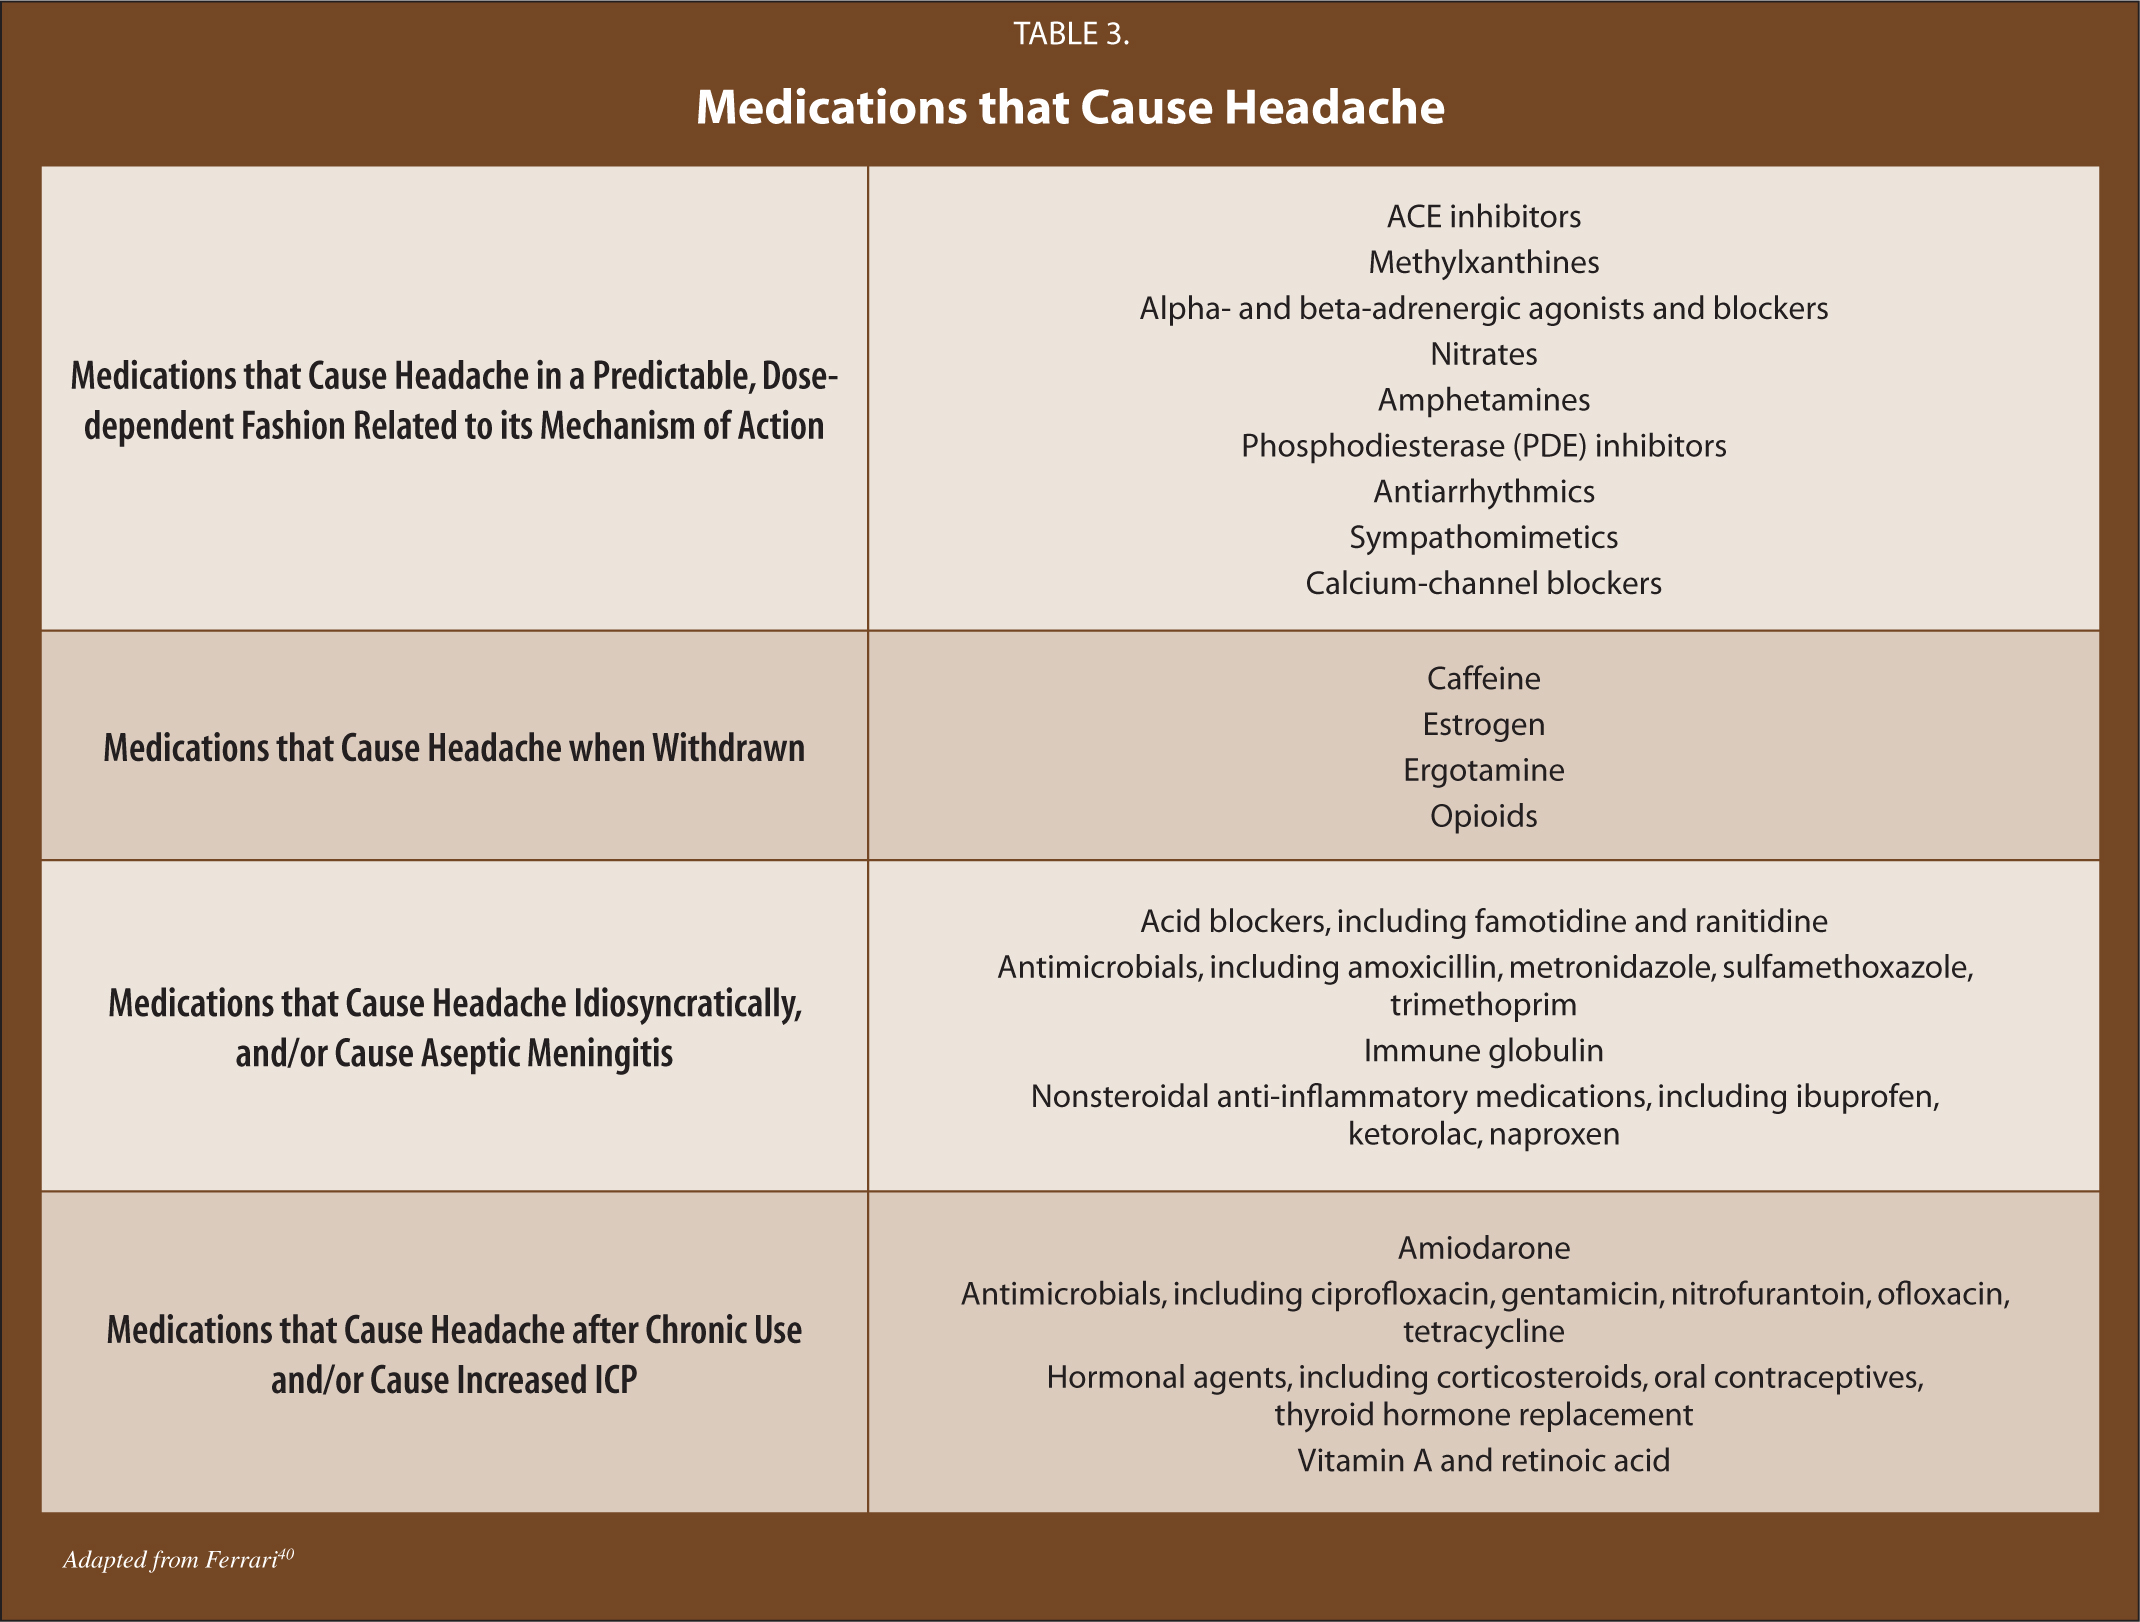 Medications that Cause Headache